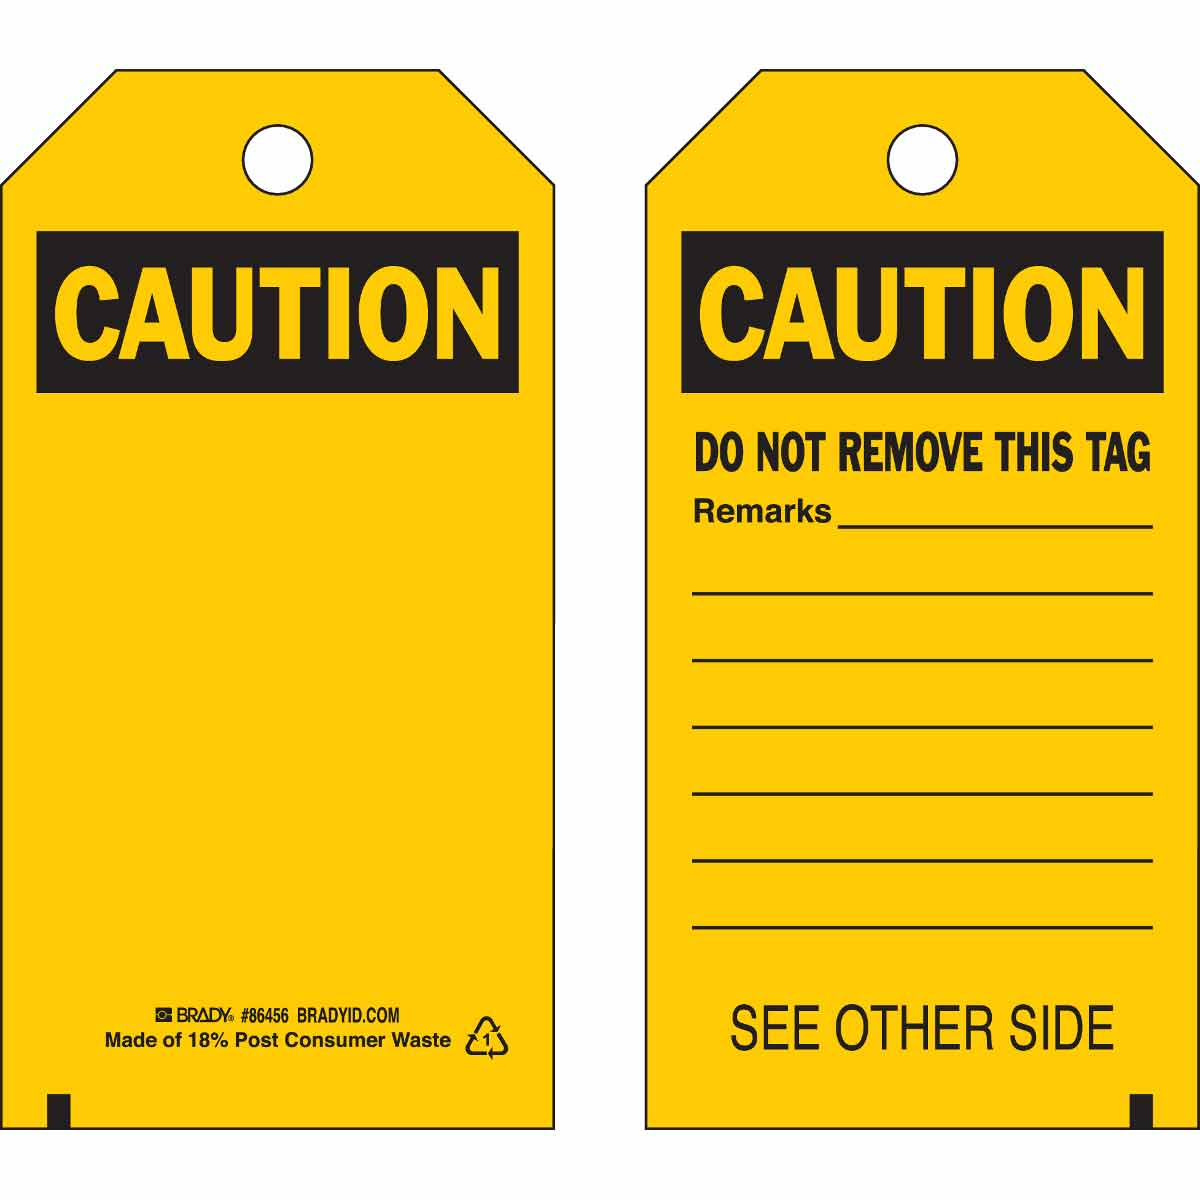 Brady® 86445 Laminated Rectangular Inspection and Material Control Tag, 5-3/4 in H x 3 in W, Black on Yellow, 3/8 in Hole, B-837 Heavy Duty Polyester